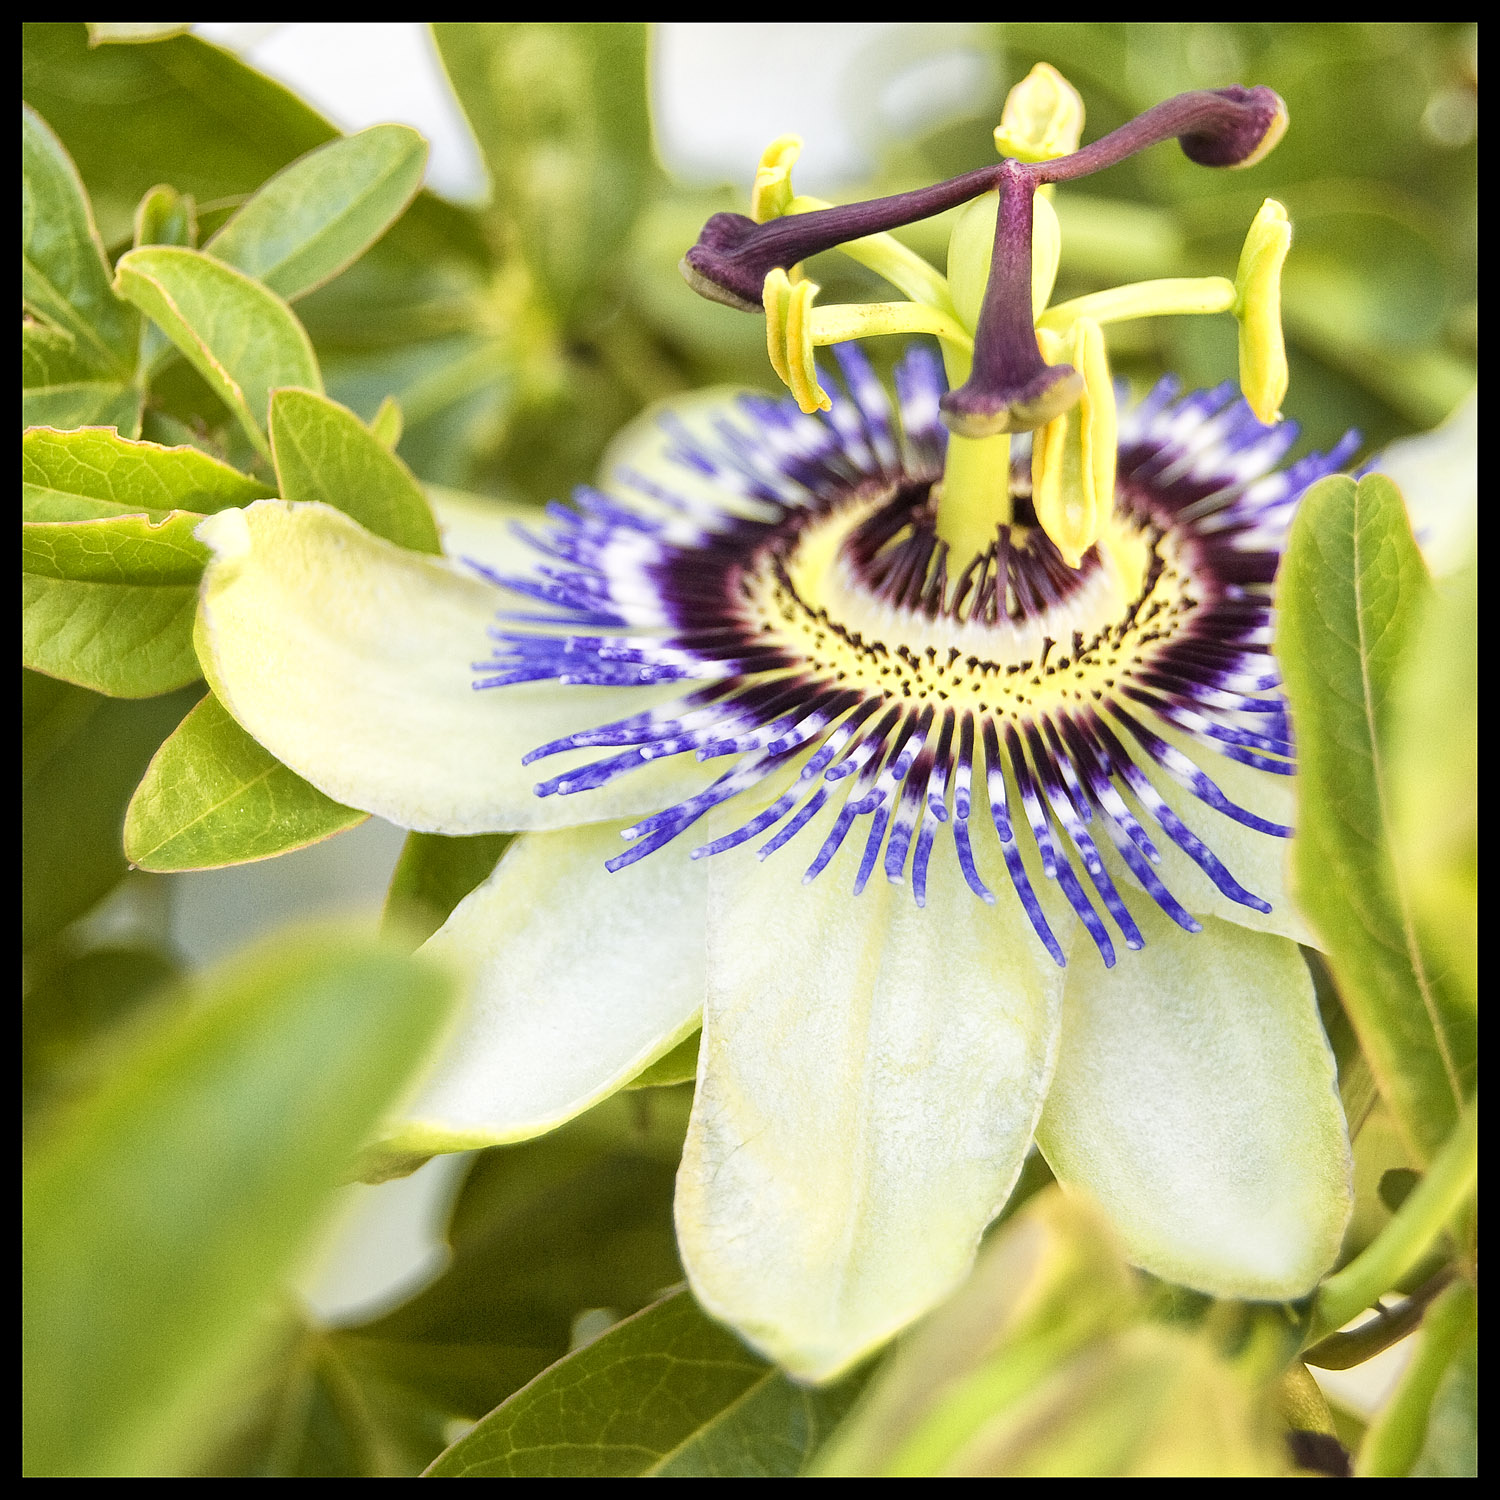 Our passion fruit vines are covered in blooms